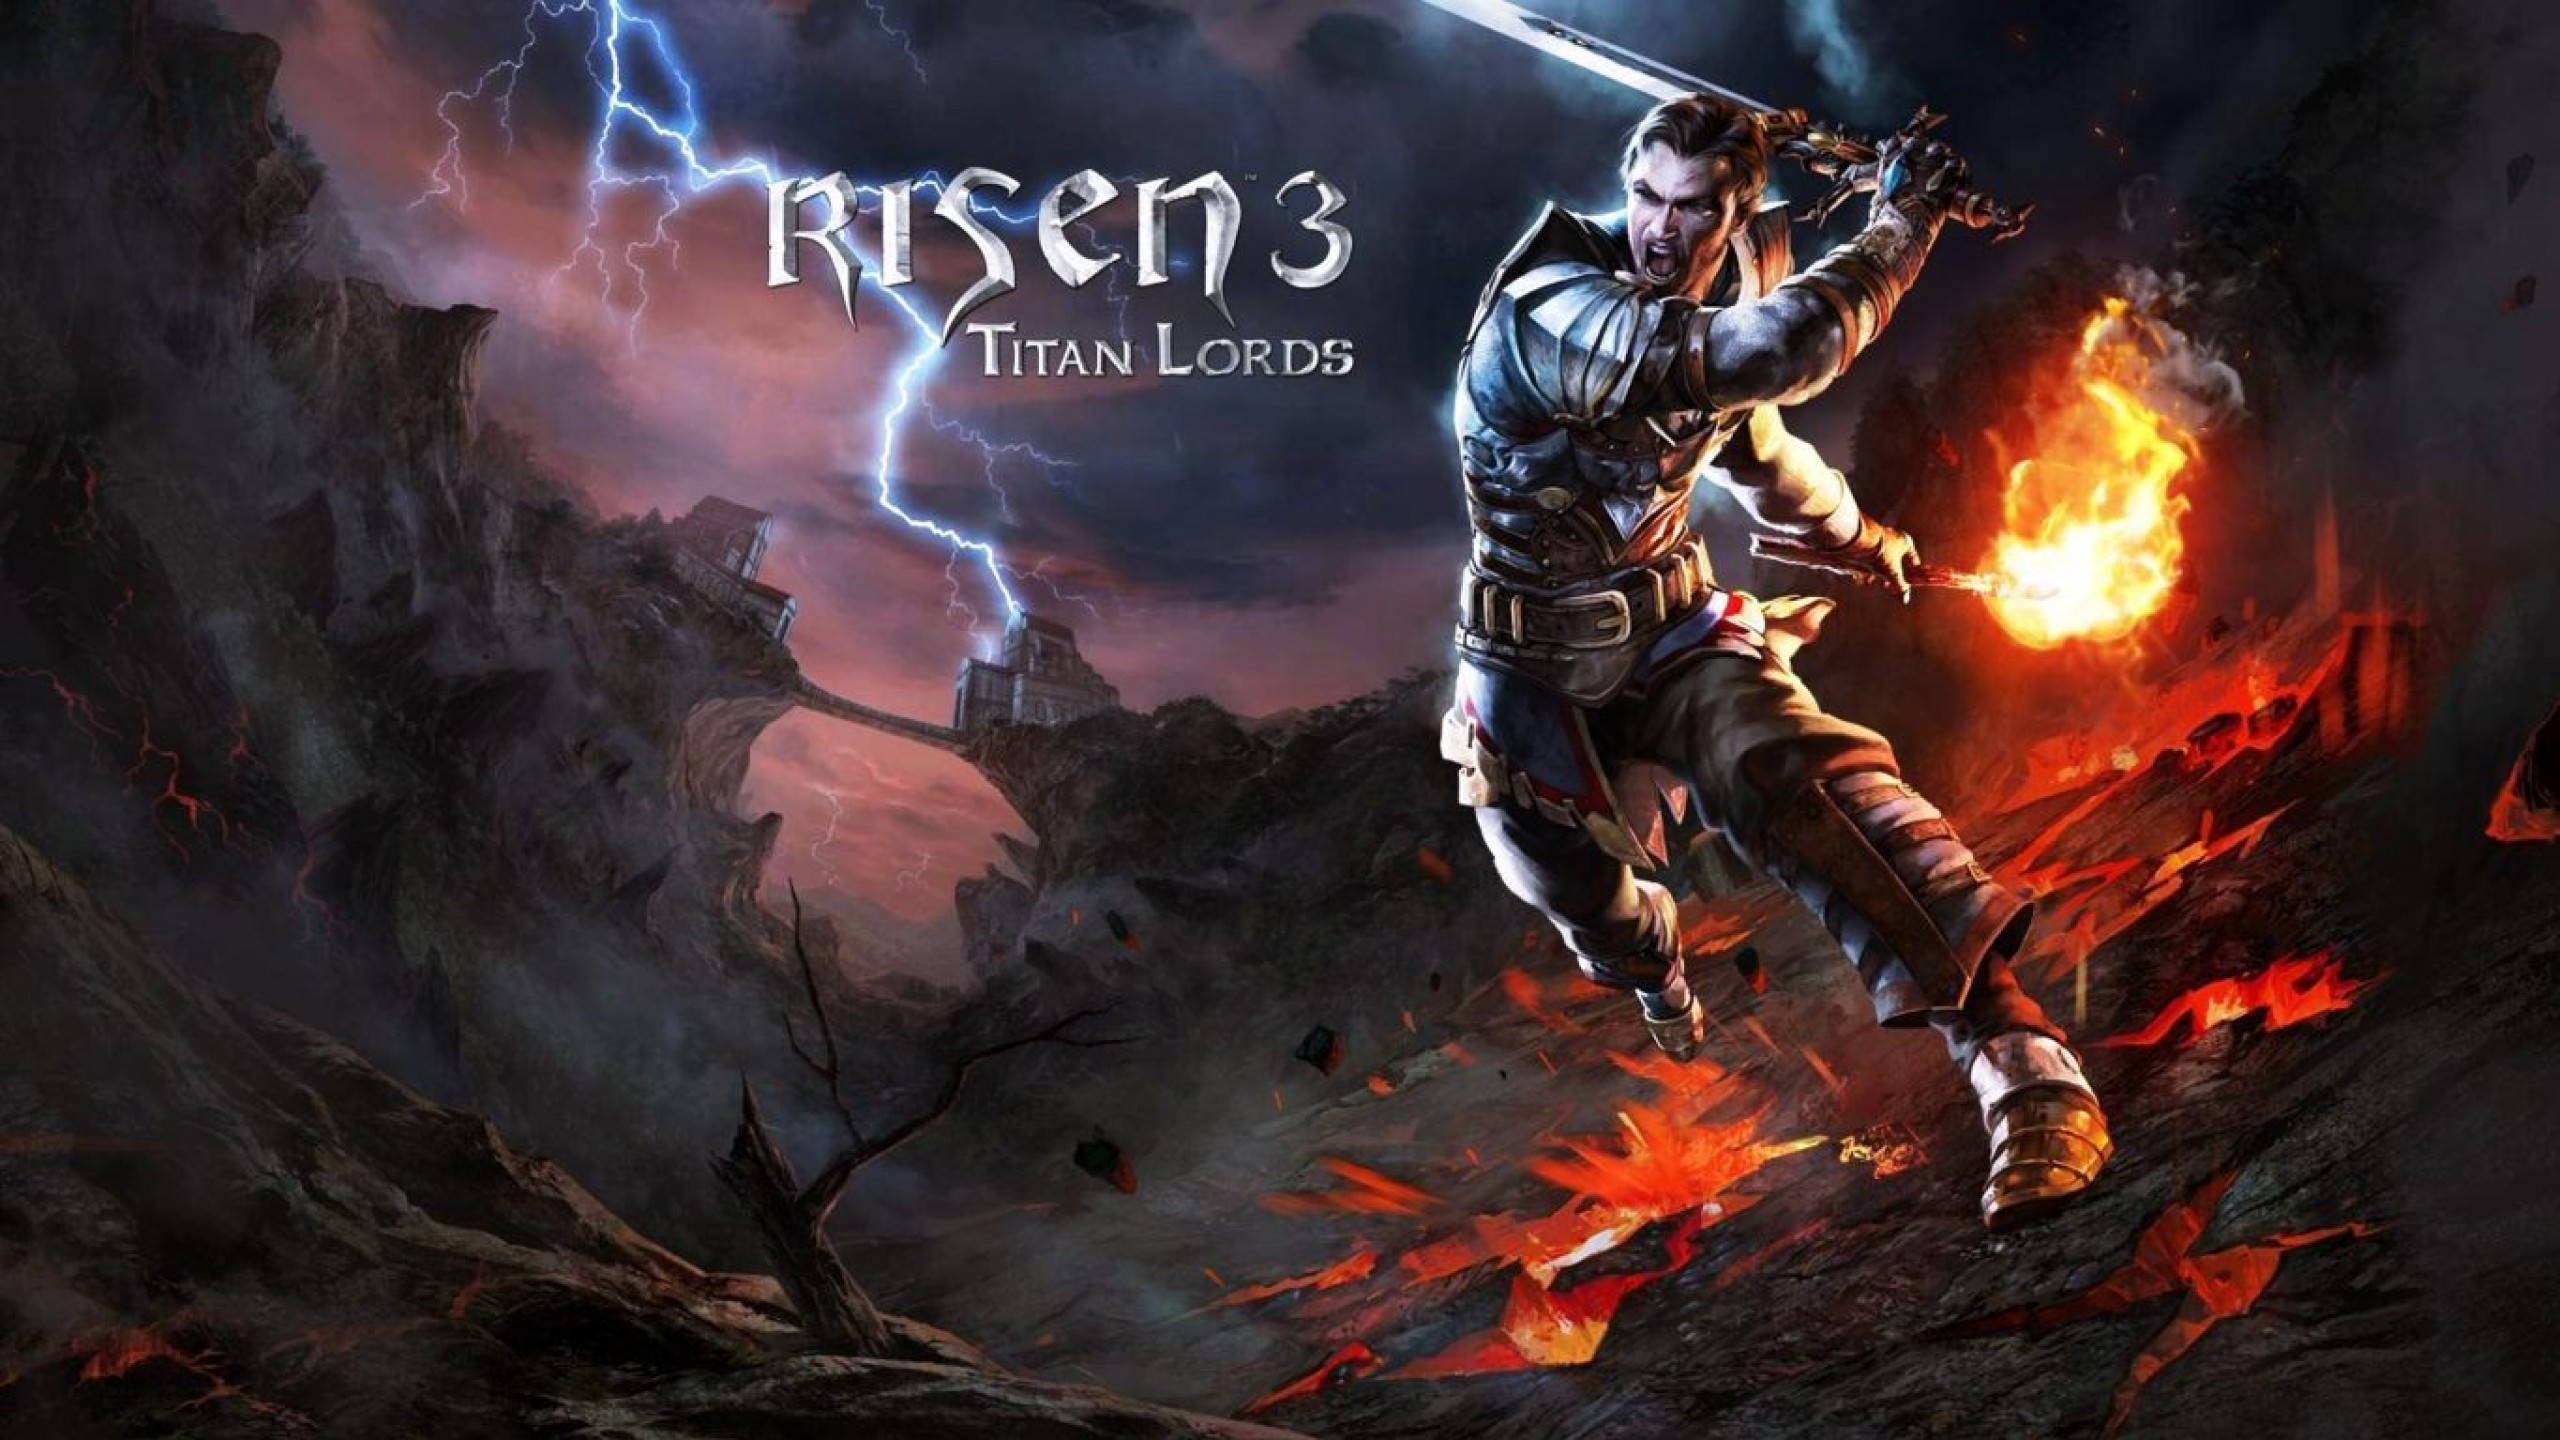 risen-3-titan-lords-hd-wallpaper-2.jpg